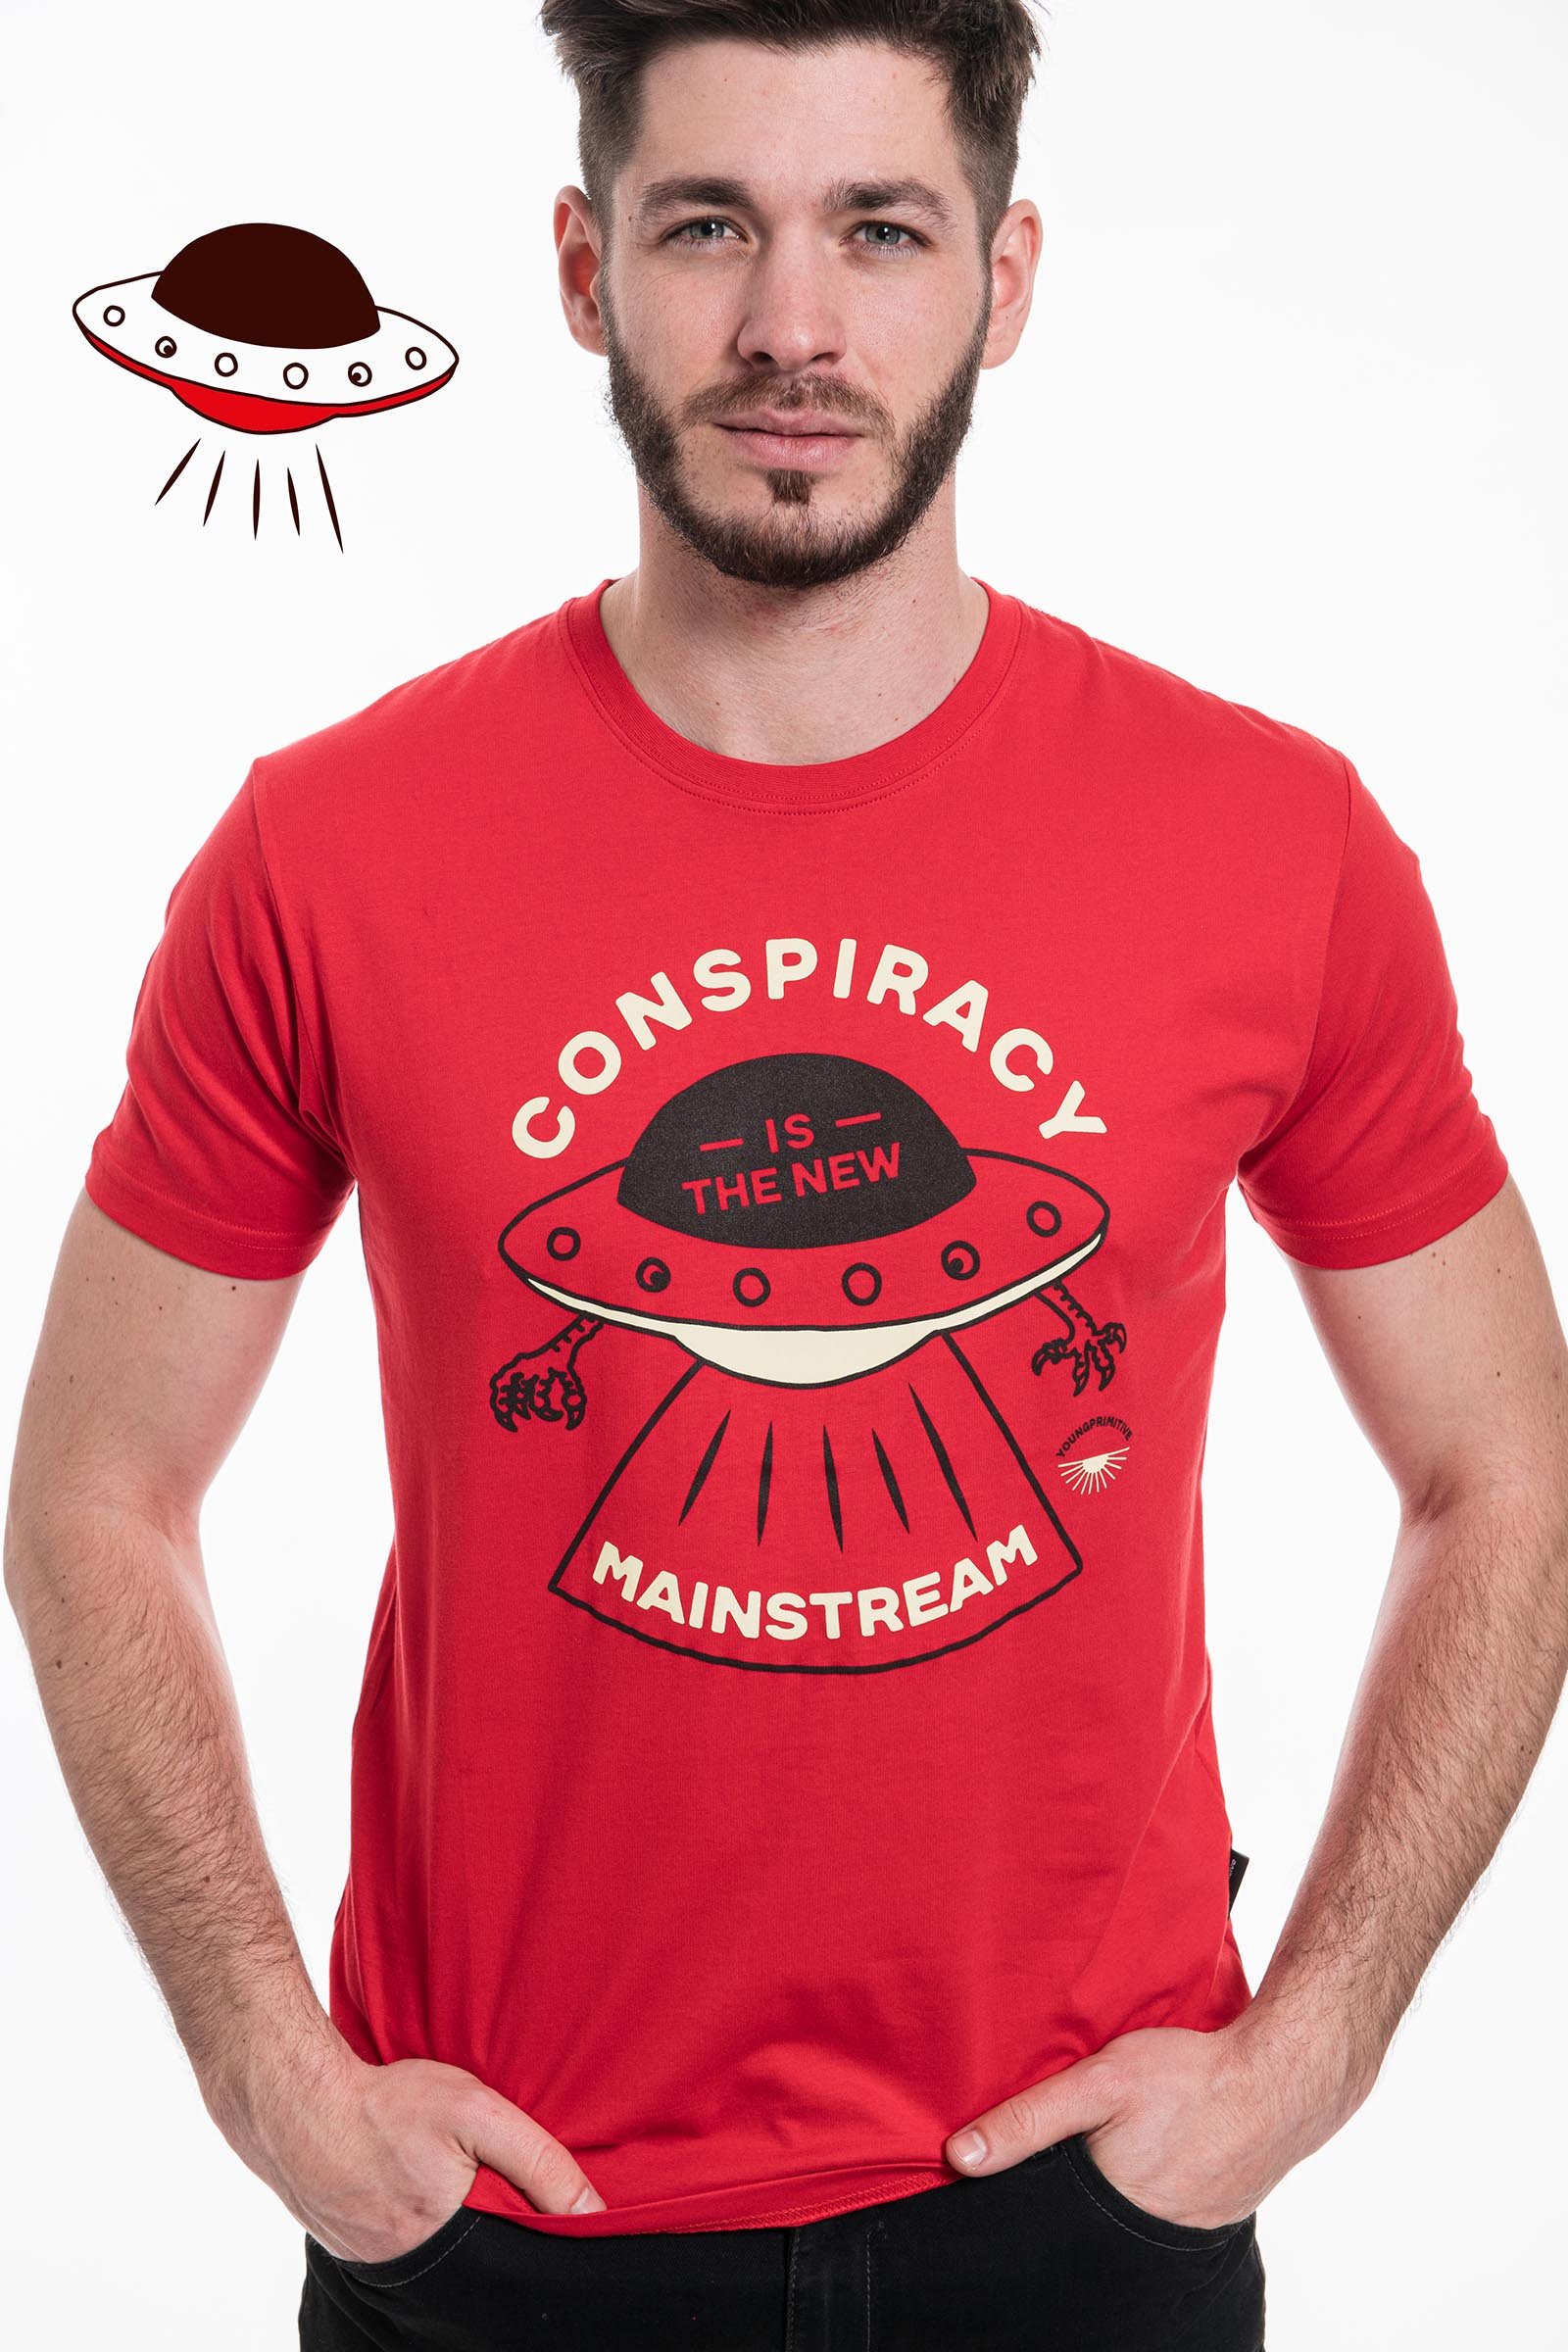 t-shirt for men Conspiracy red